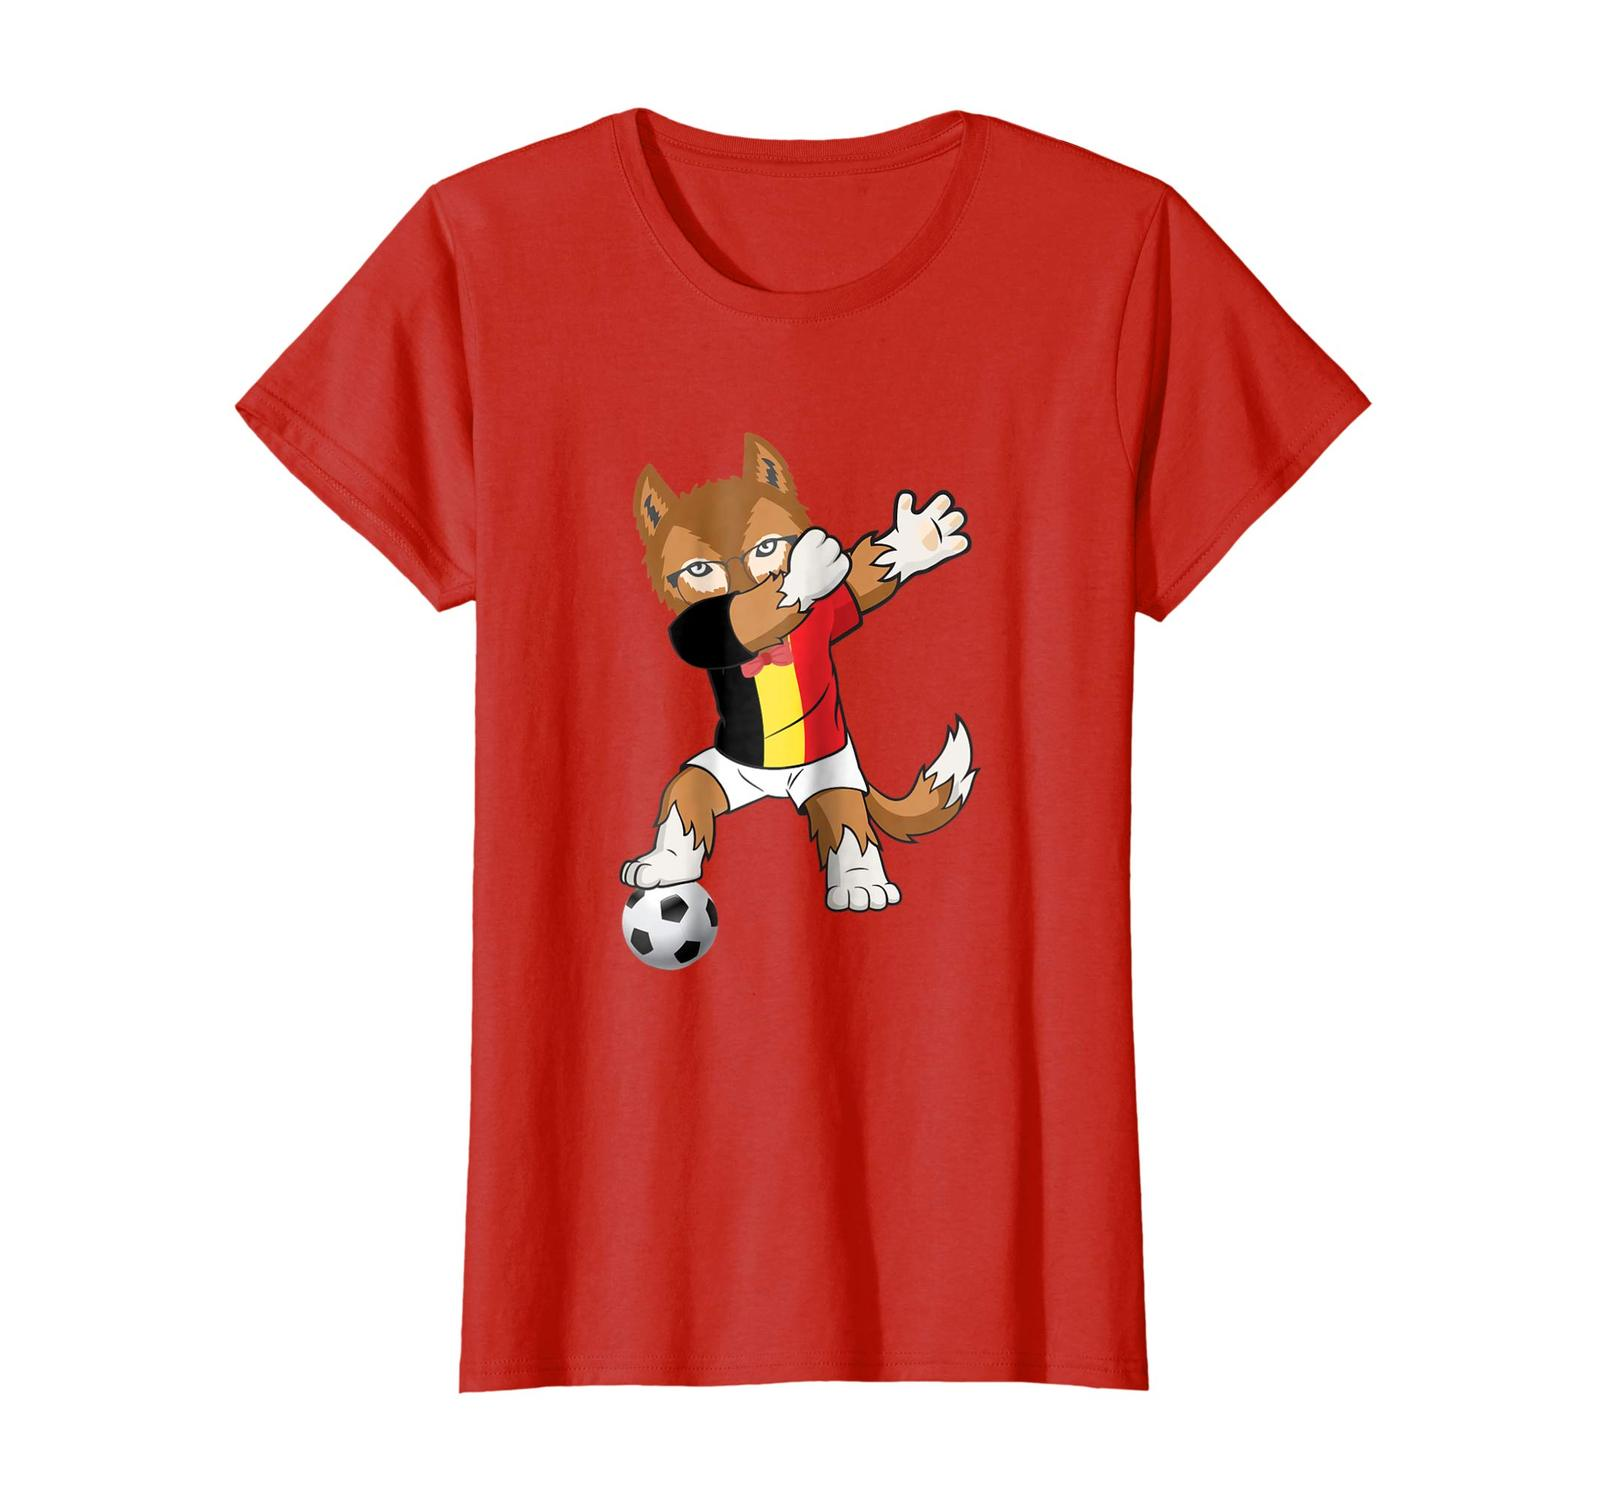 Brother Shirts - Belgium Soccer Jersey 2018 World Football Cup T-Shirt Flag Wowe